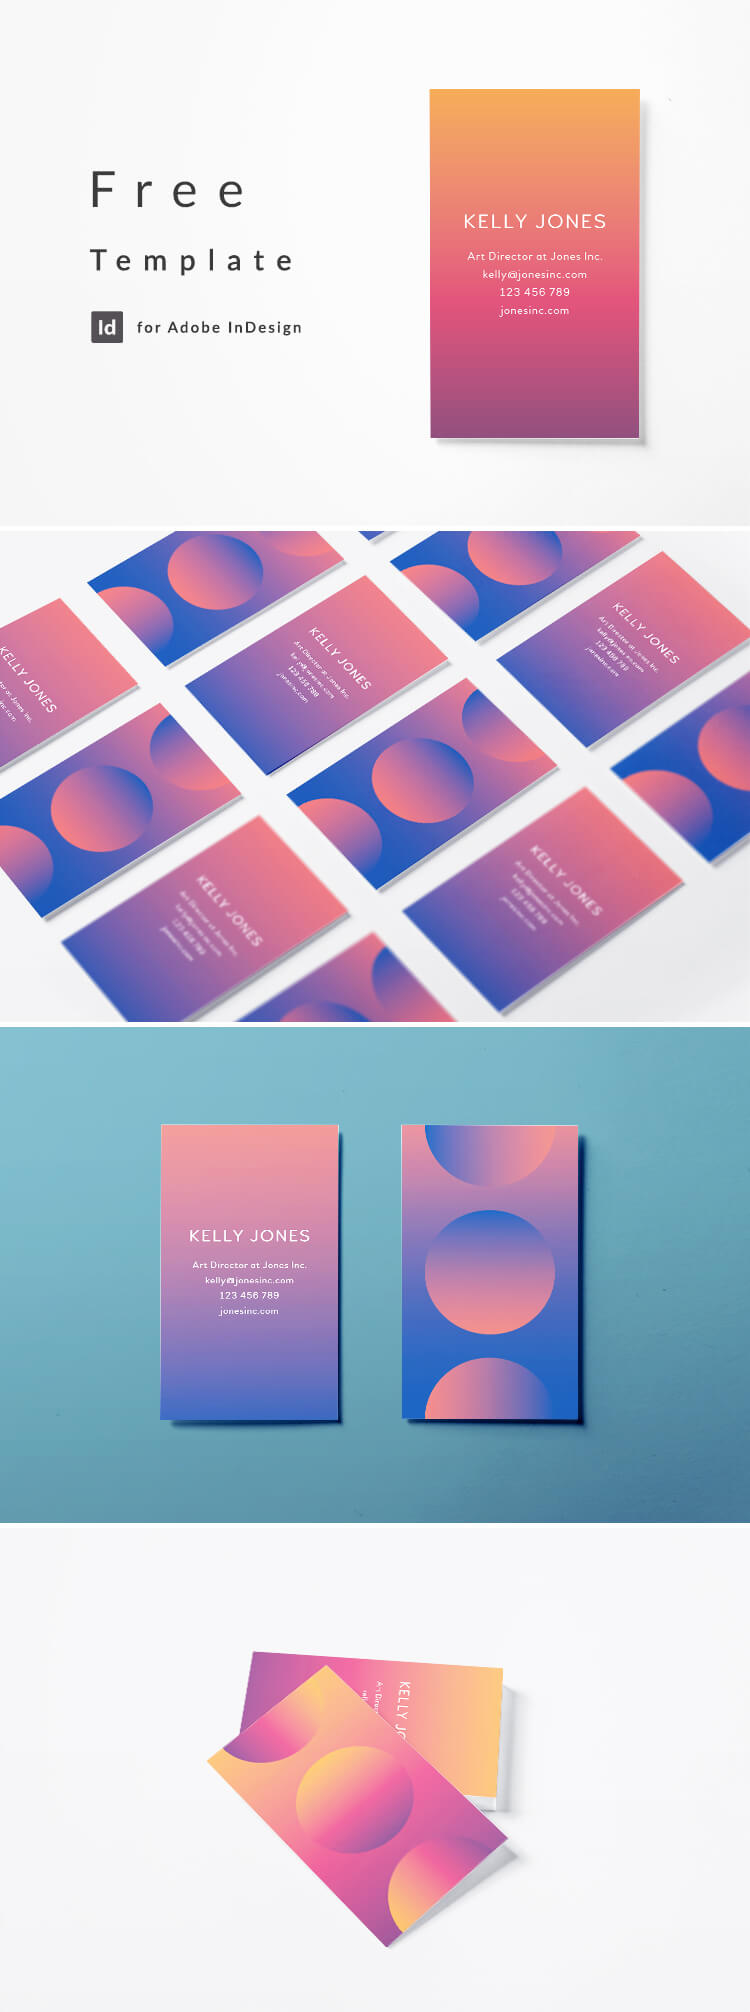 Free InDesign Business card template - 2 color options, modern creative layout. Free download for InDesign. Pink to blue gradient.